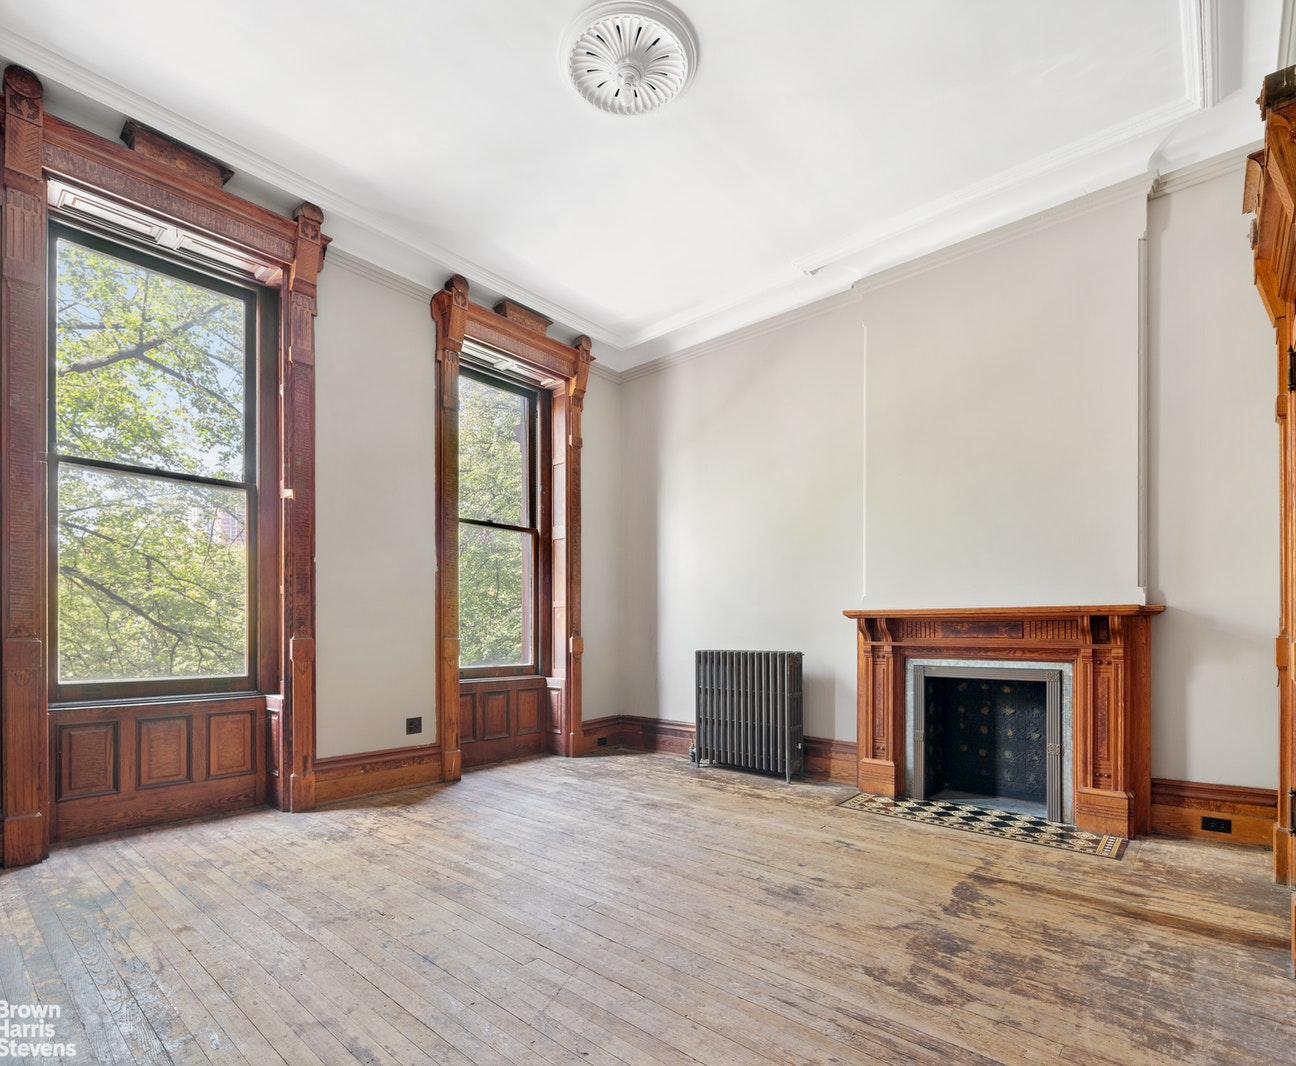 198 Washington Park, Fort Greene, Brooklyn, NY, 11205, $6,500,000, Property For Sale, Halstead Real Estate, Photo 14